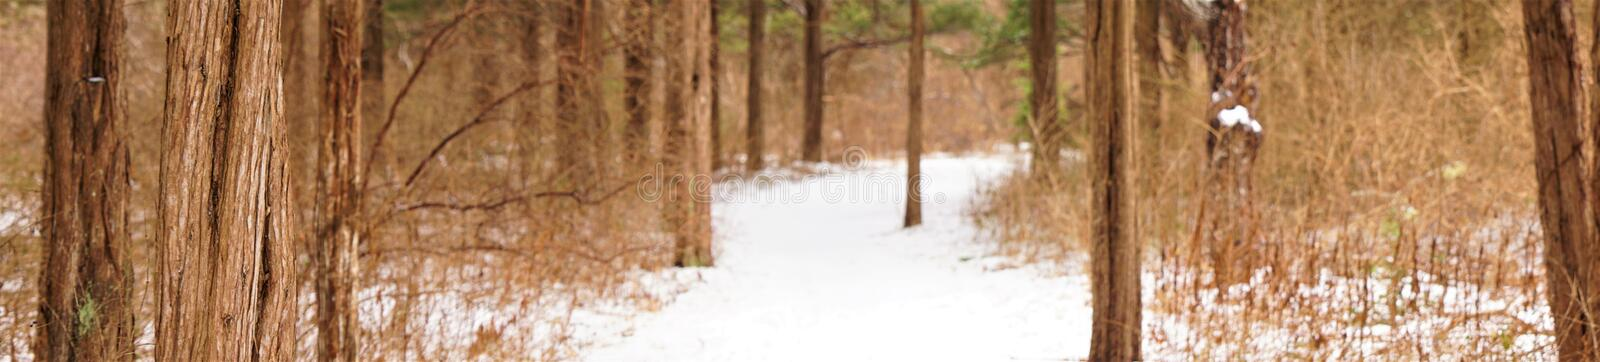 Snowy trail through tall red cedars stock images